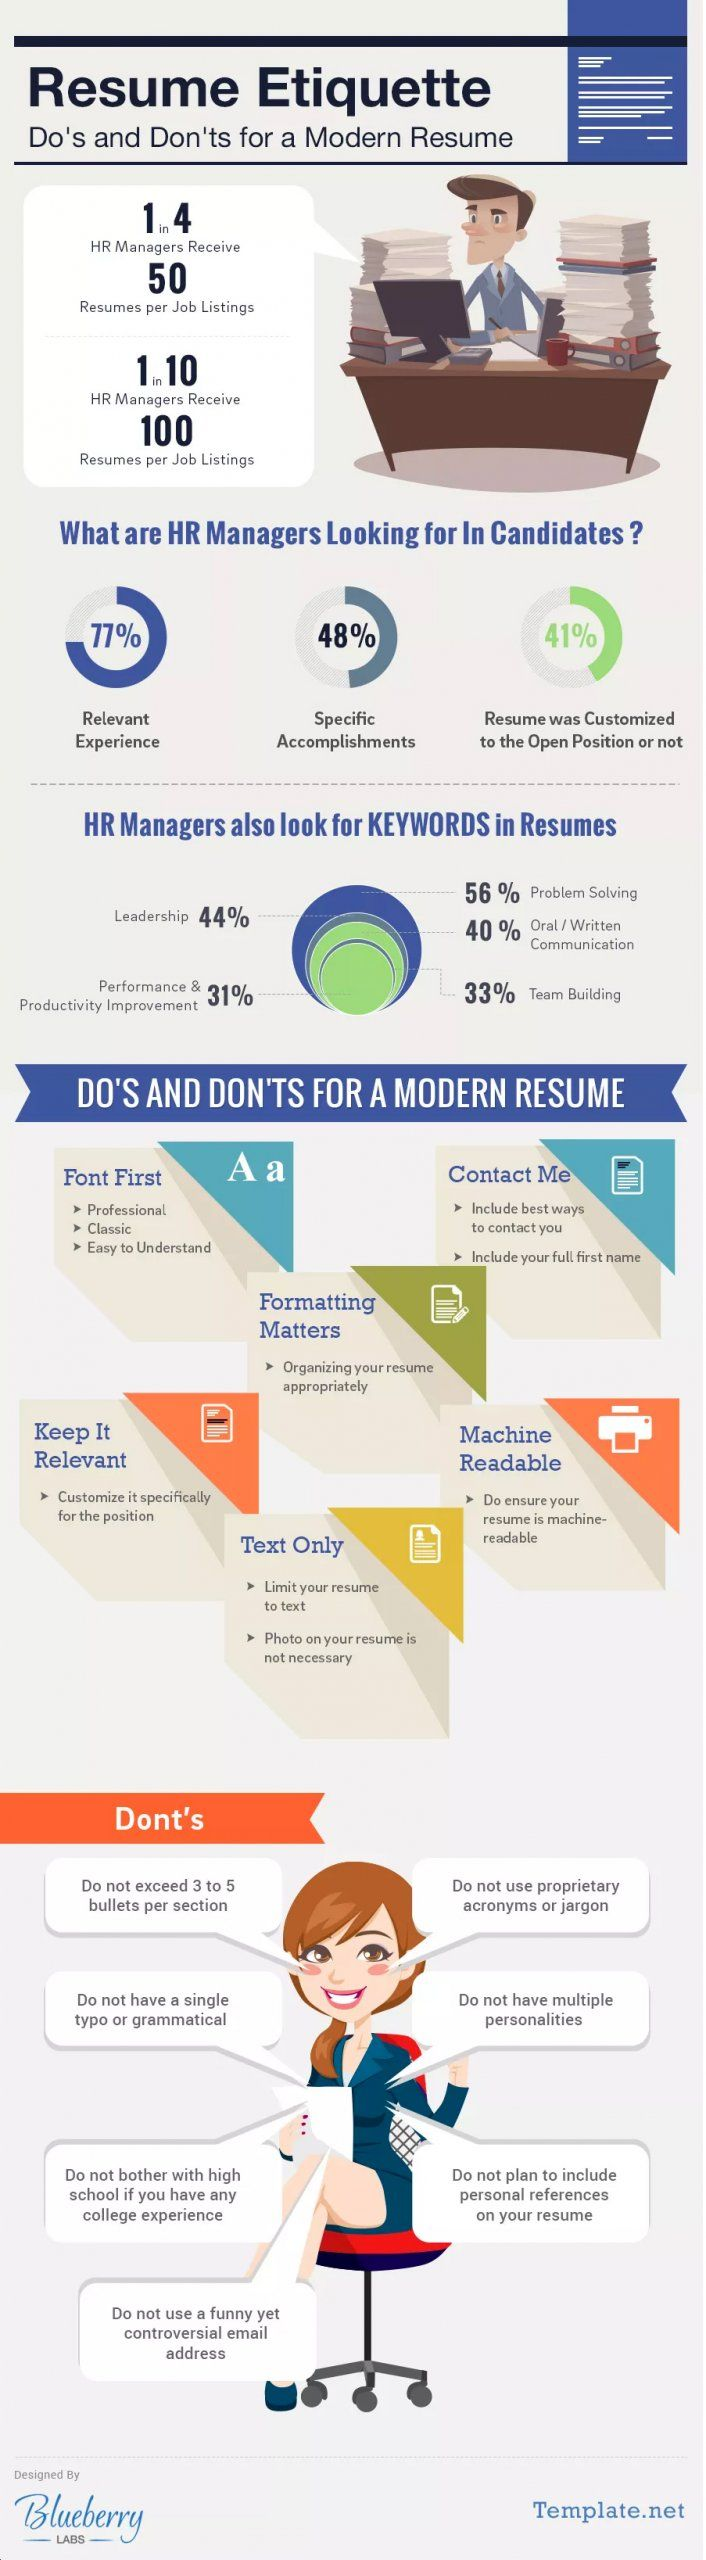 Free Resume Search Here's What The Modern Résumé Should Look Like  Modern Resume